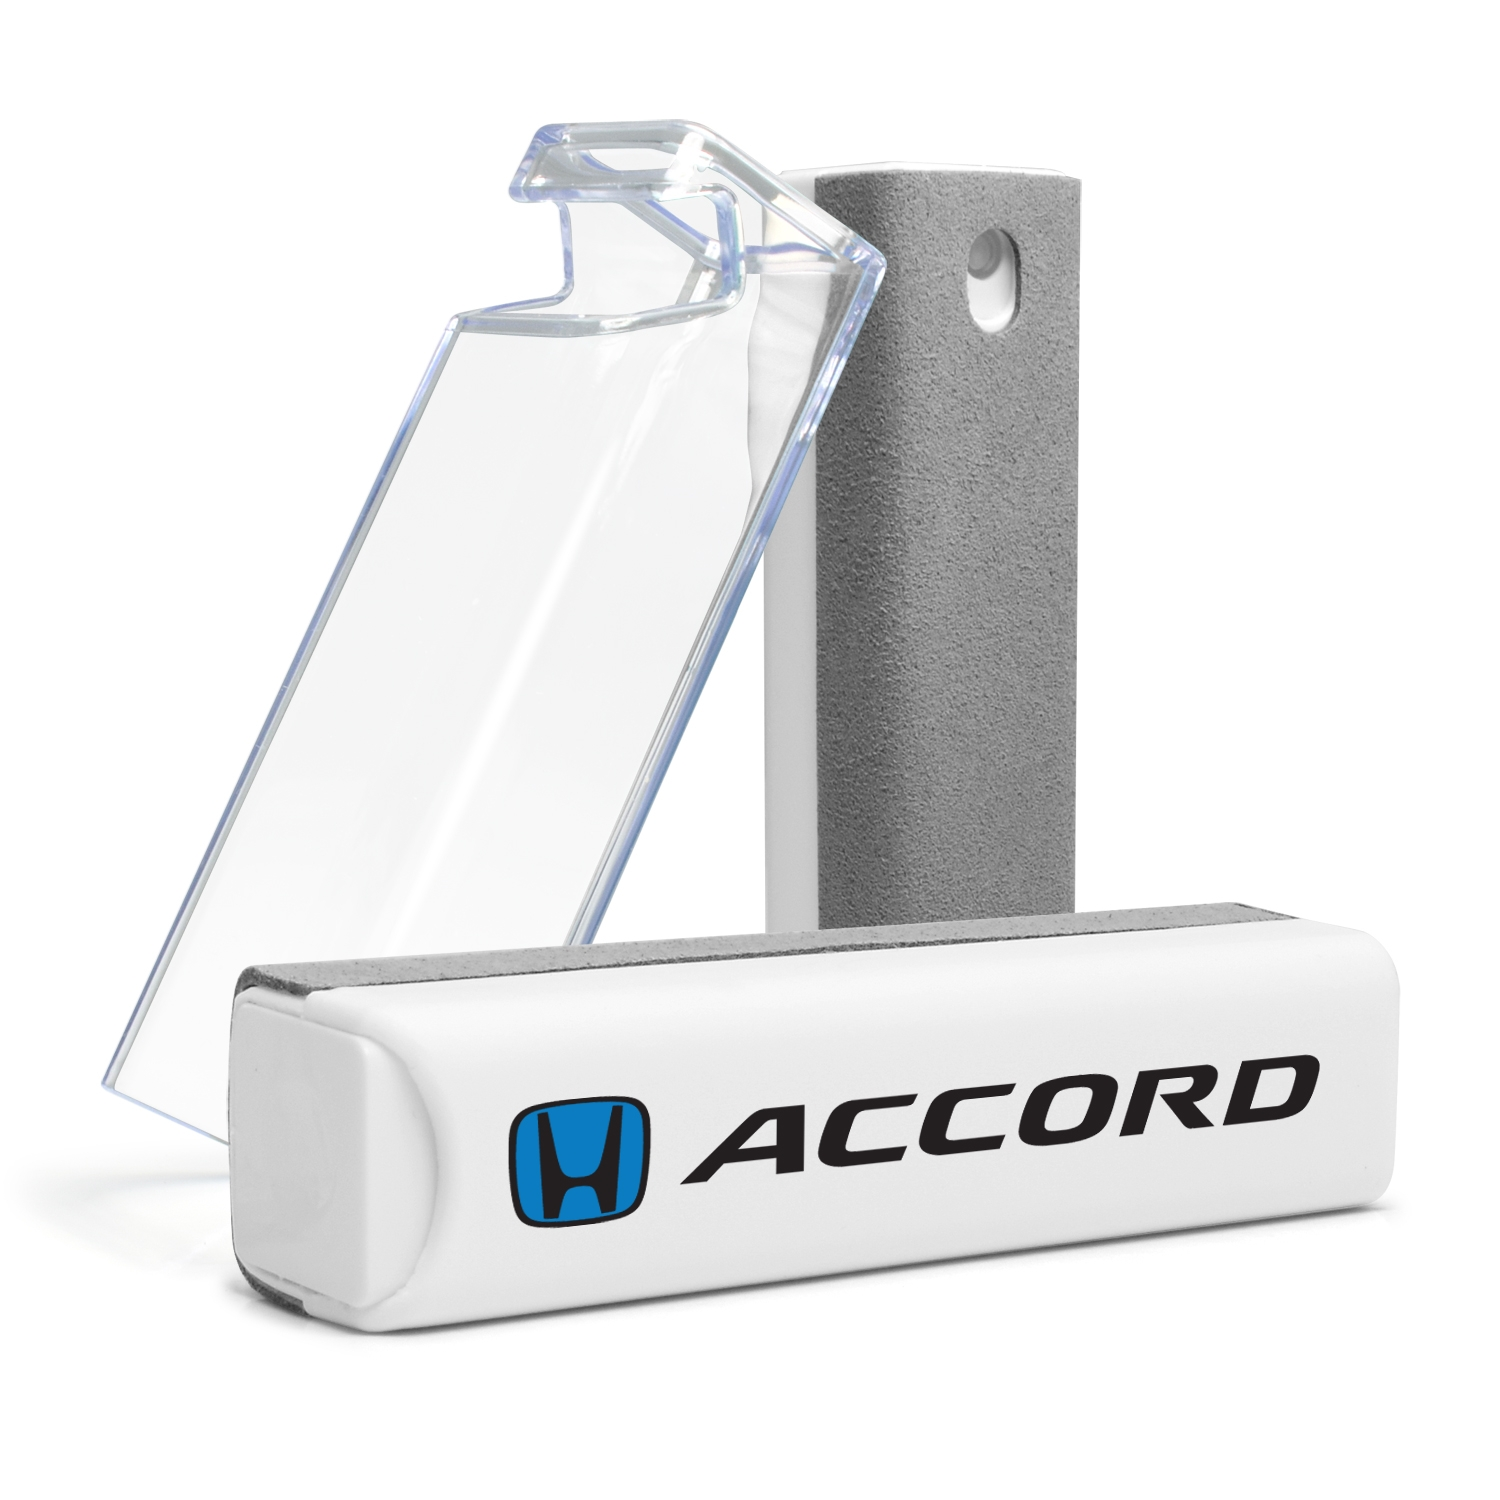 Honda Blue Logo Accord All-in-One Gray Wipe Navigation Screen Cleaner with Clear Cell Phone Stand